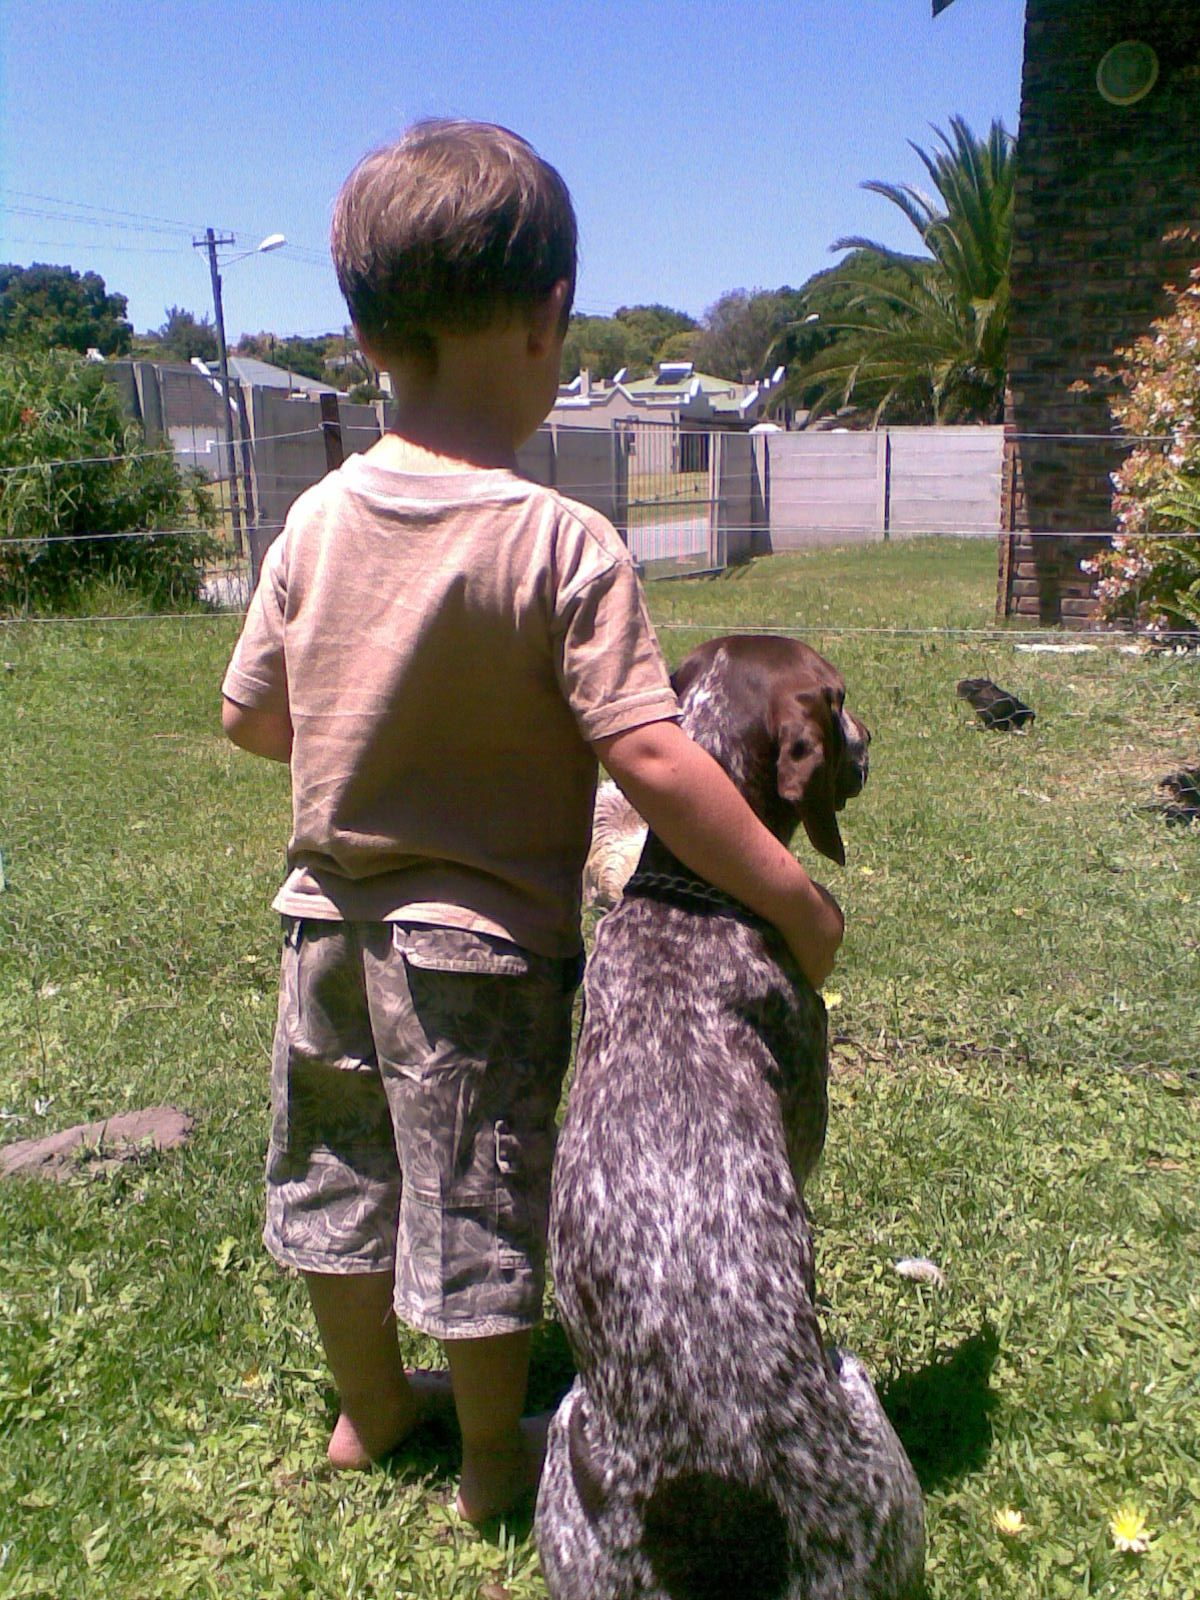 Vin The German Shorthaired Pointer One Day We Ll Farm With Chickens German Shorthaired Pointer German Shorthair Puppies And Kitties